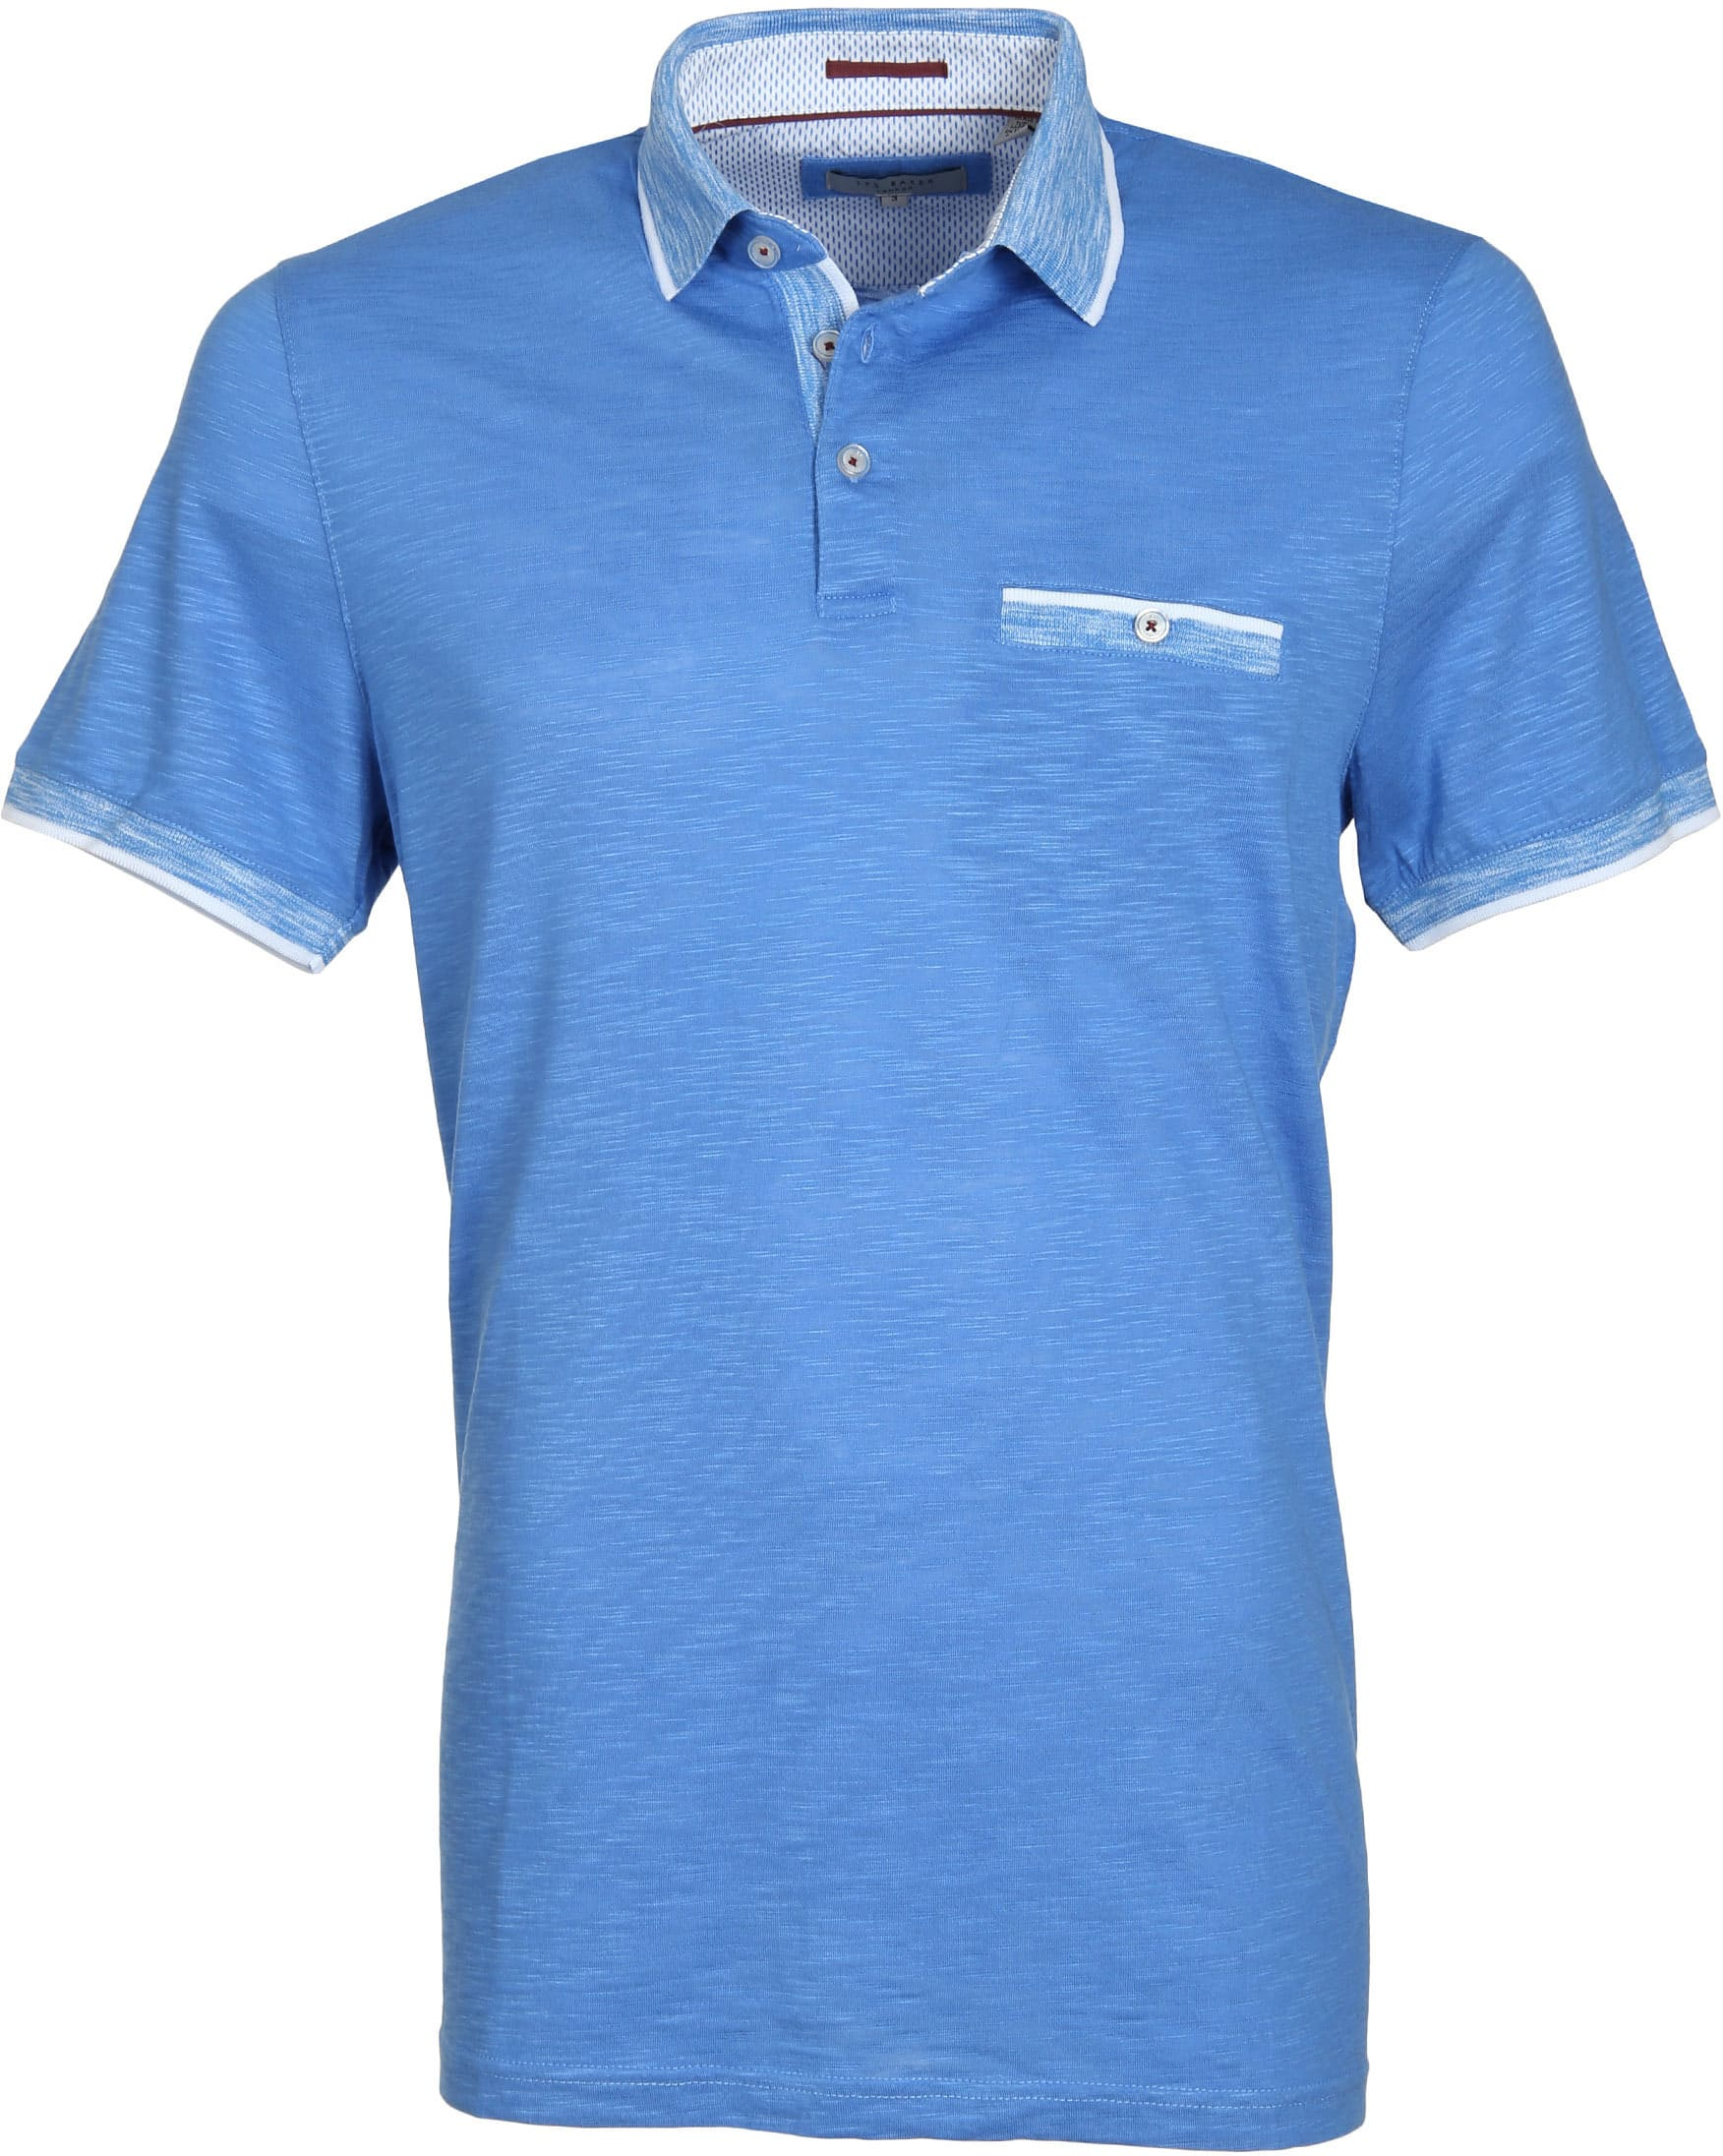 Ted Baker Poloshirt Space Blauw foto 0